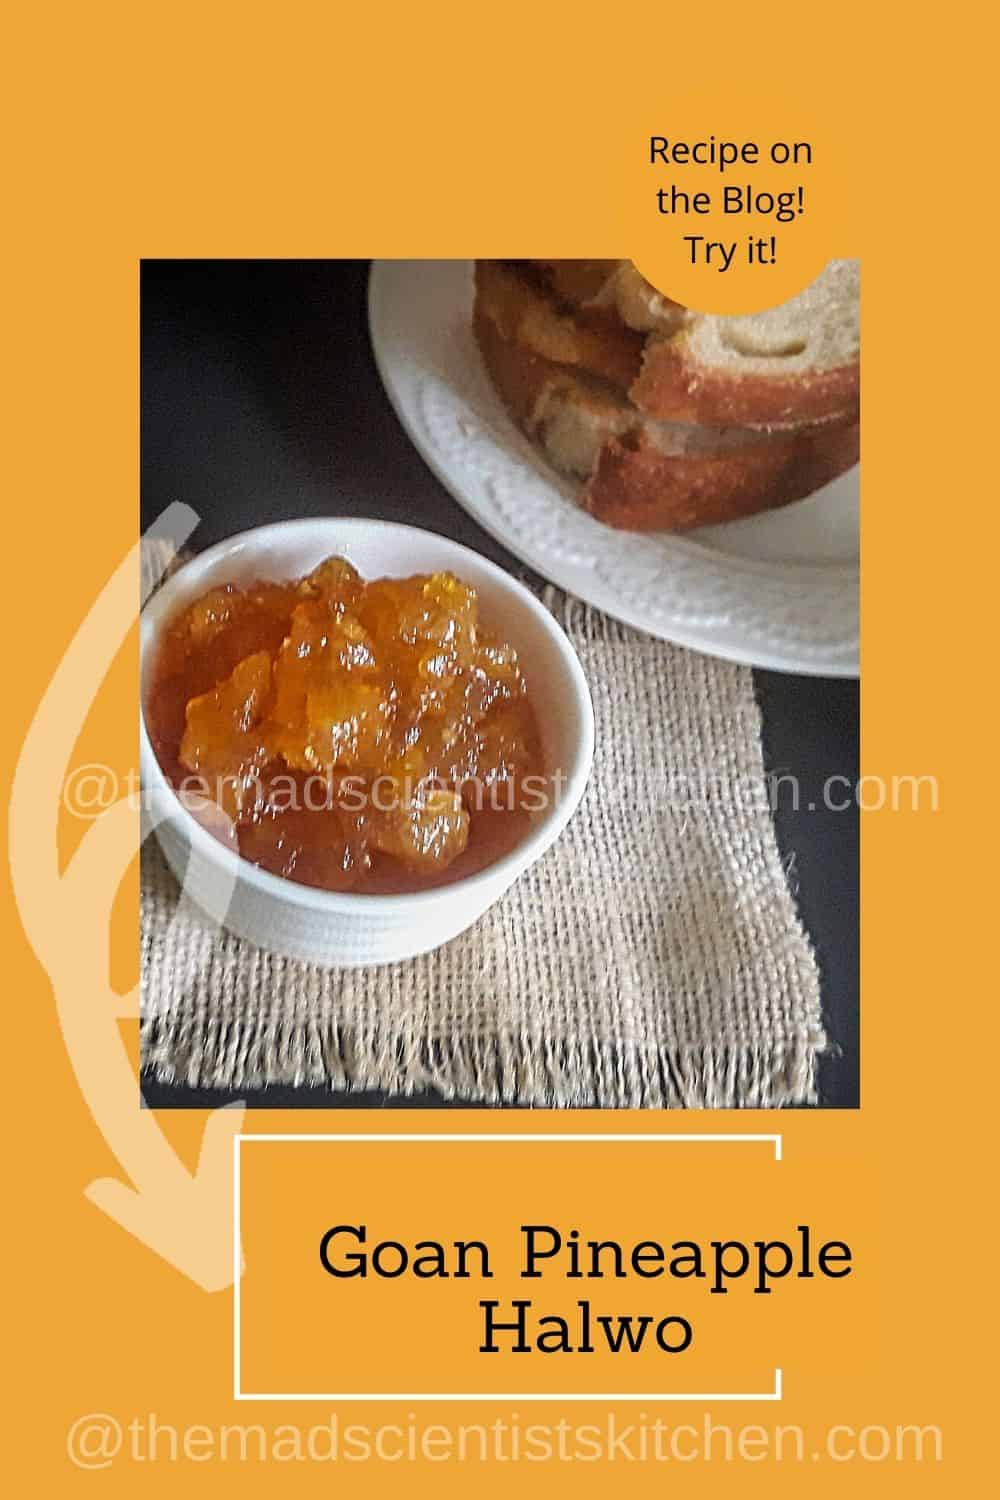 Breakfast with us with homemade sourdough bread and pineapple jam